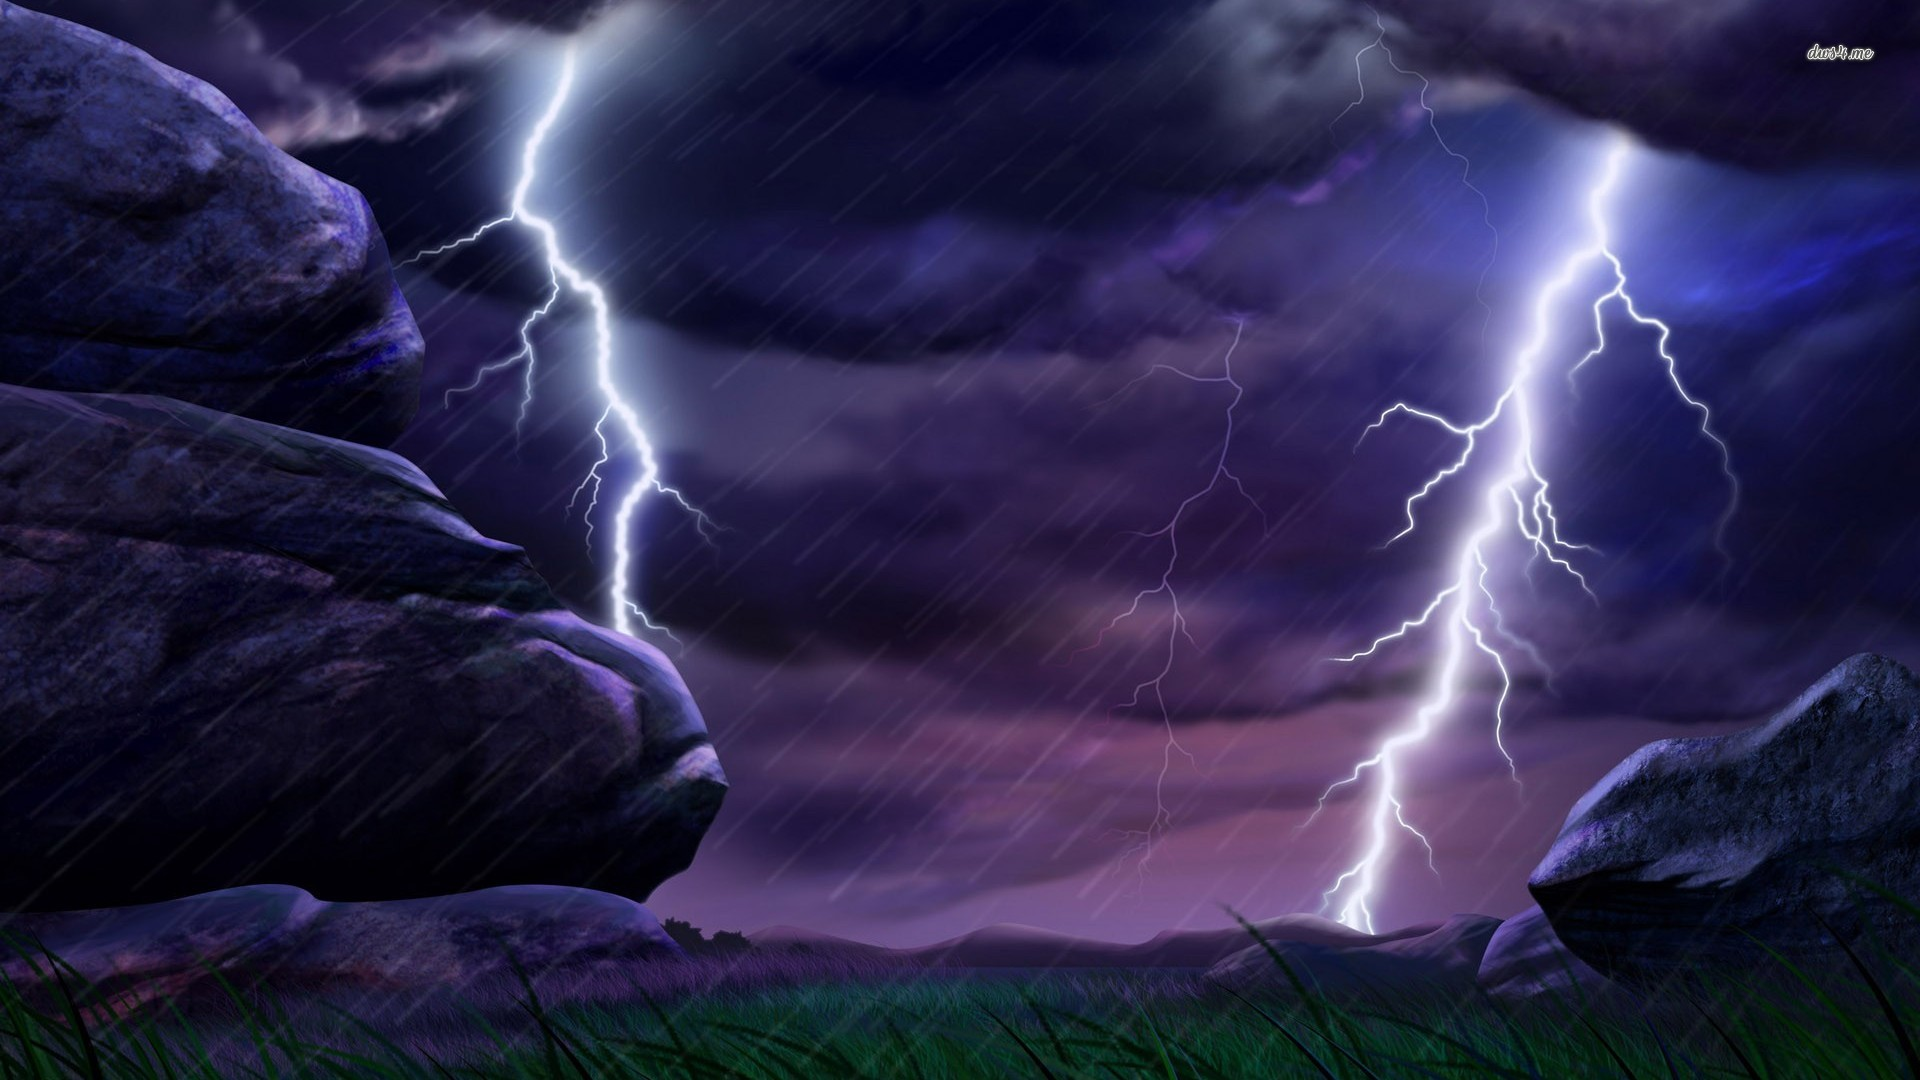 Name 21541 lightning strikes 1920x1080 digital art wallpaperjpgViews 1920x1080